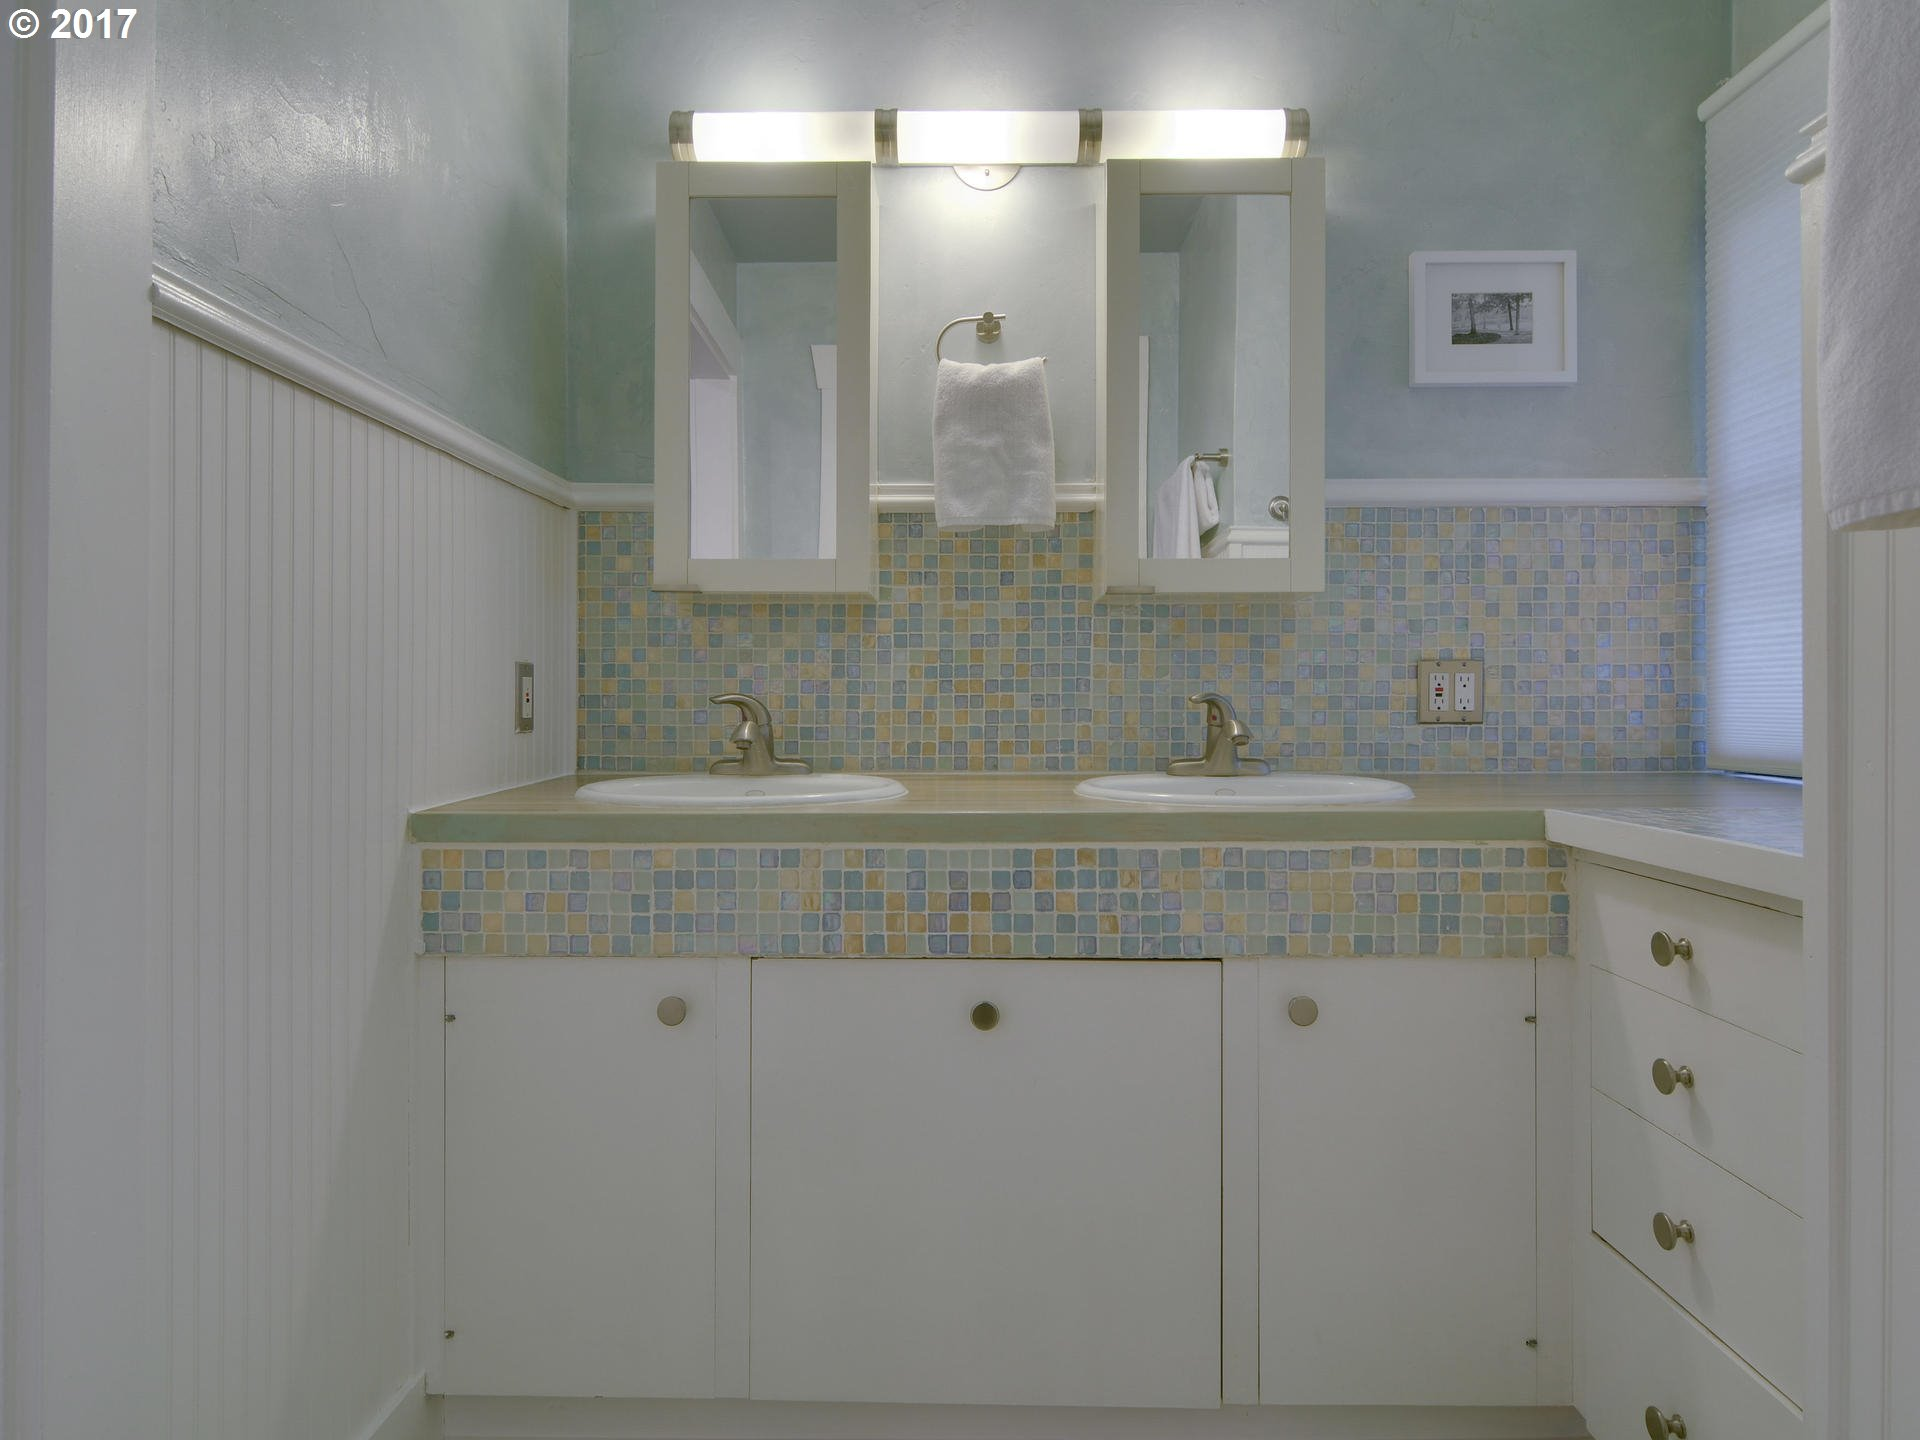 62 NW MACLEAY BLVD Portland, OR 97210 - MLS #: 17631409